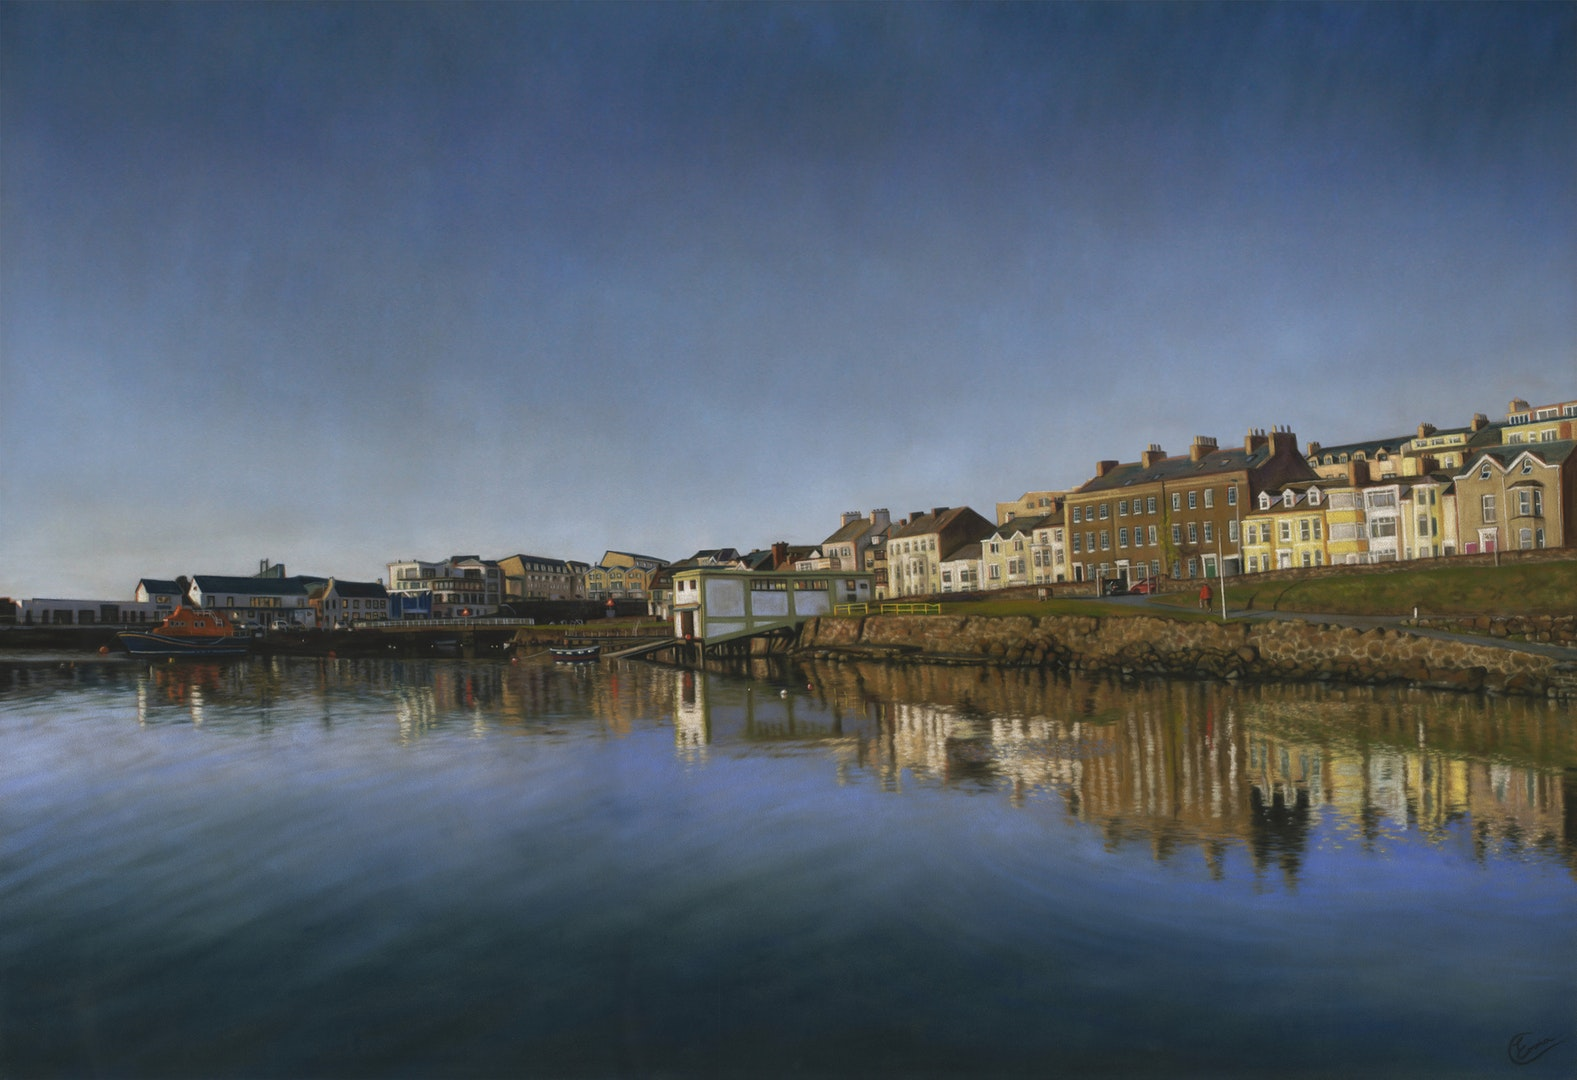 Reflecting on Portrush. Emma Colbert. Jackson's Painting Prize.